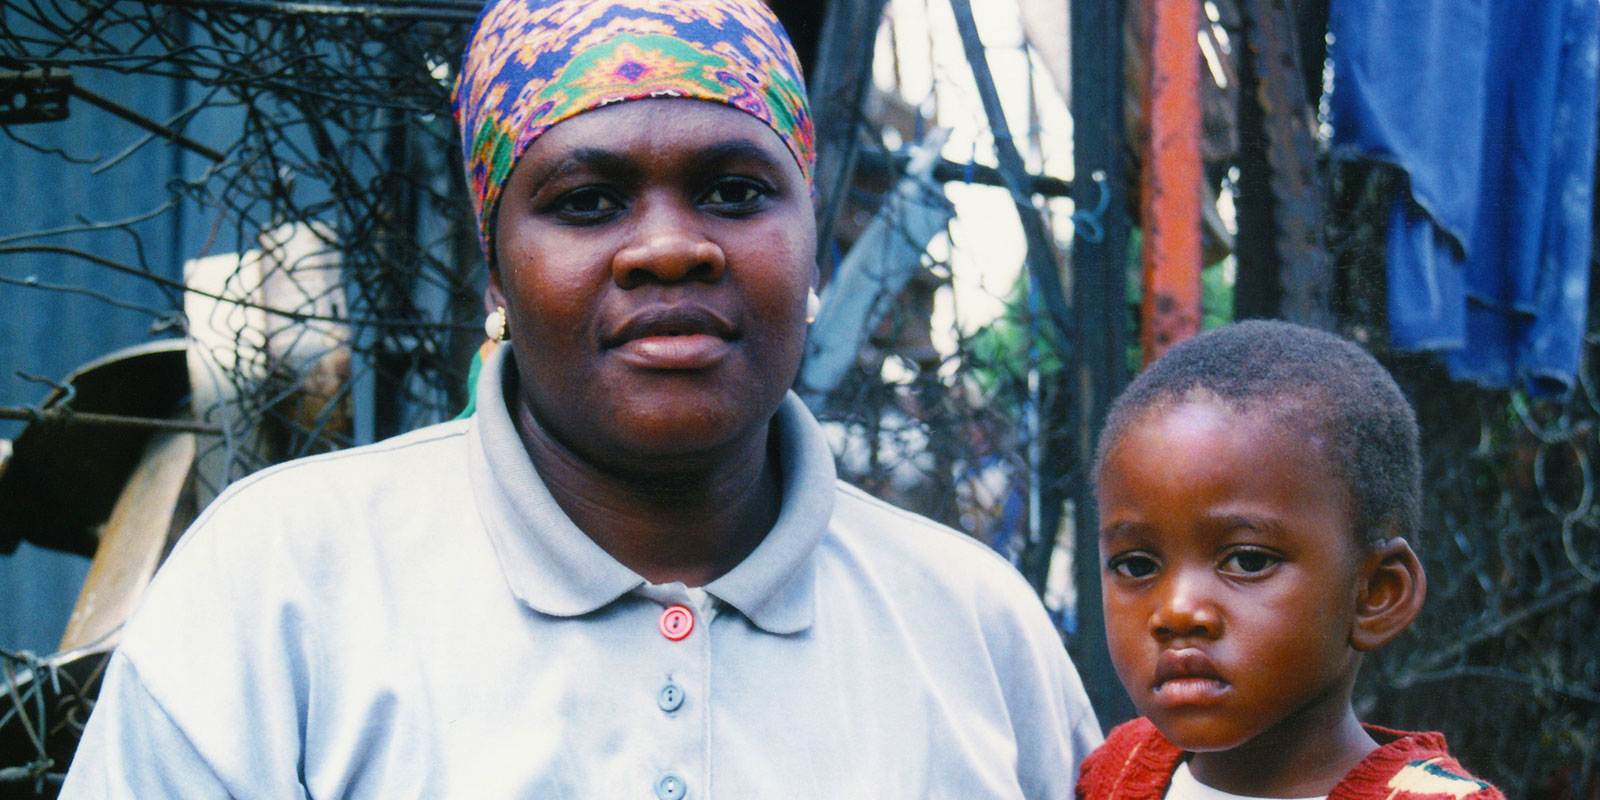 Xhosa mother and child at Soweto, South Africa - Steven Andrew Martin - School for International Training Photo Journal